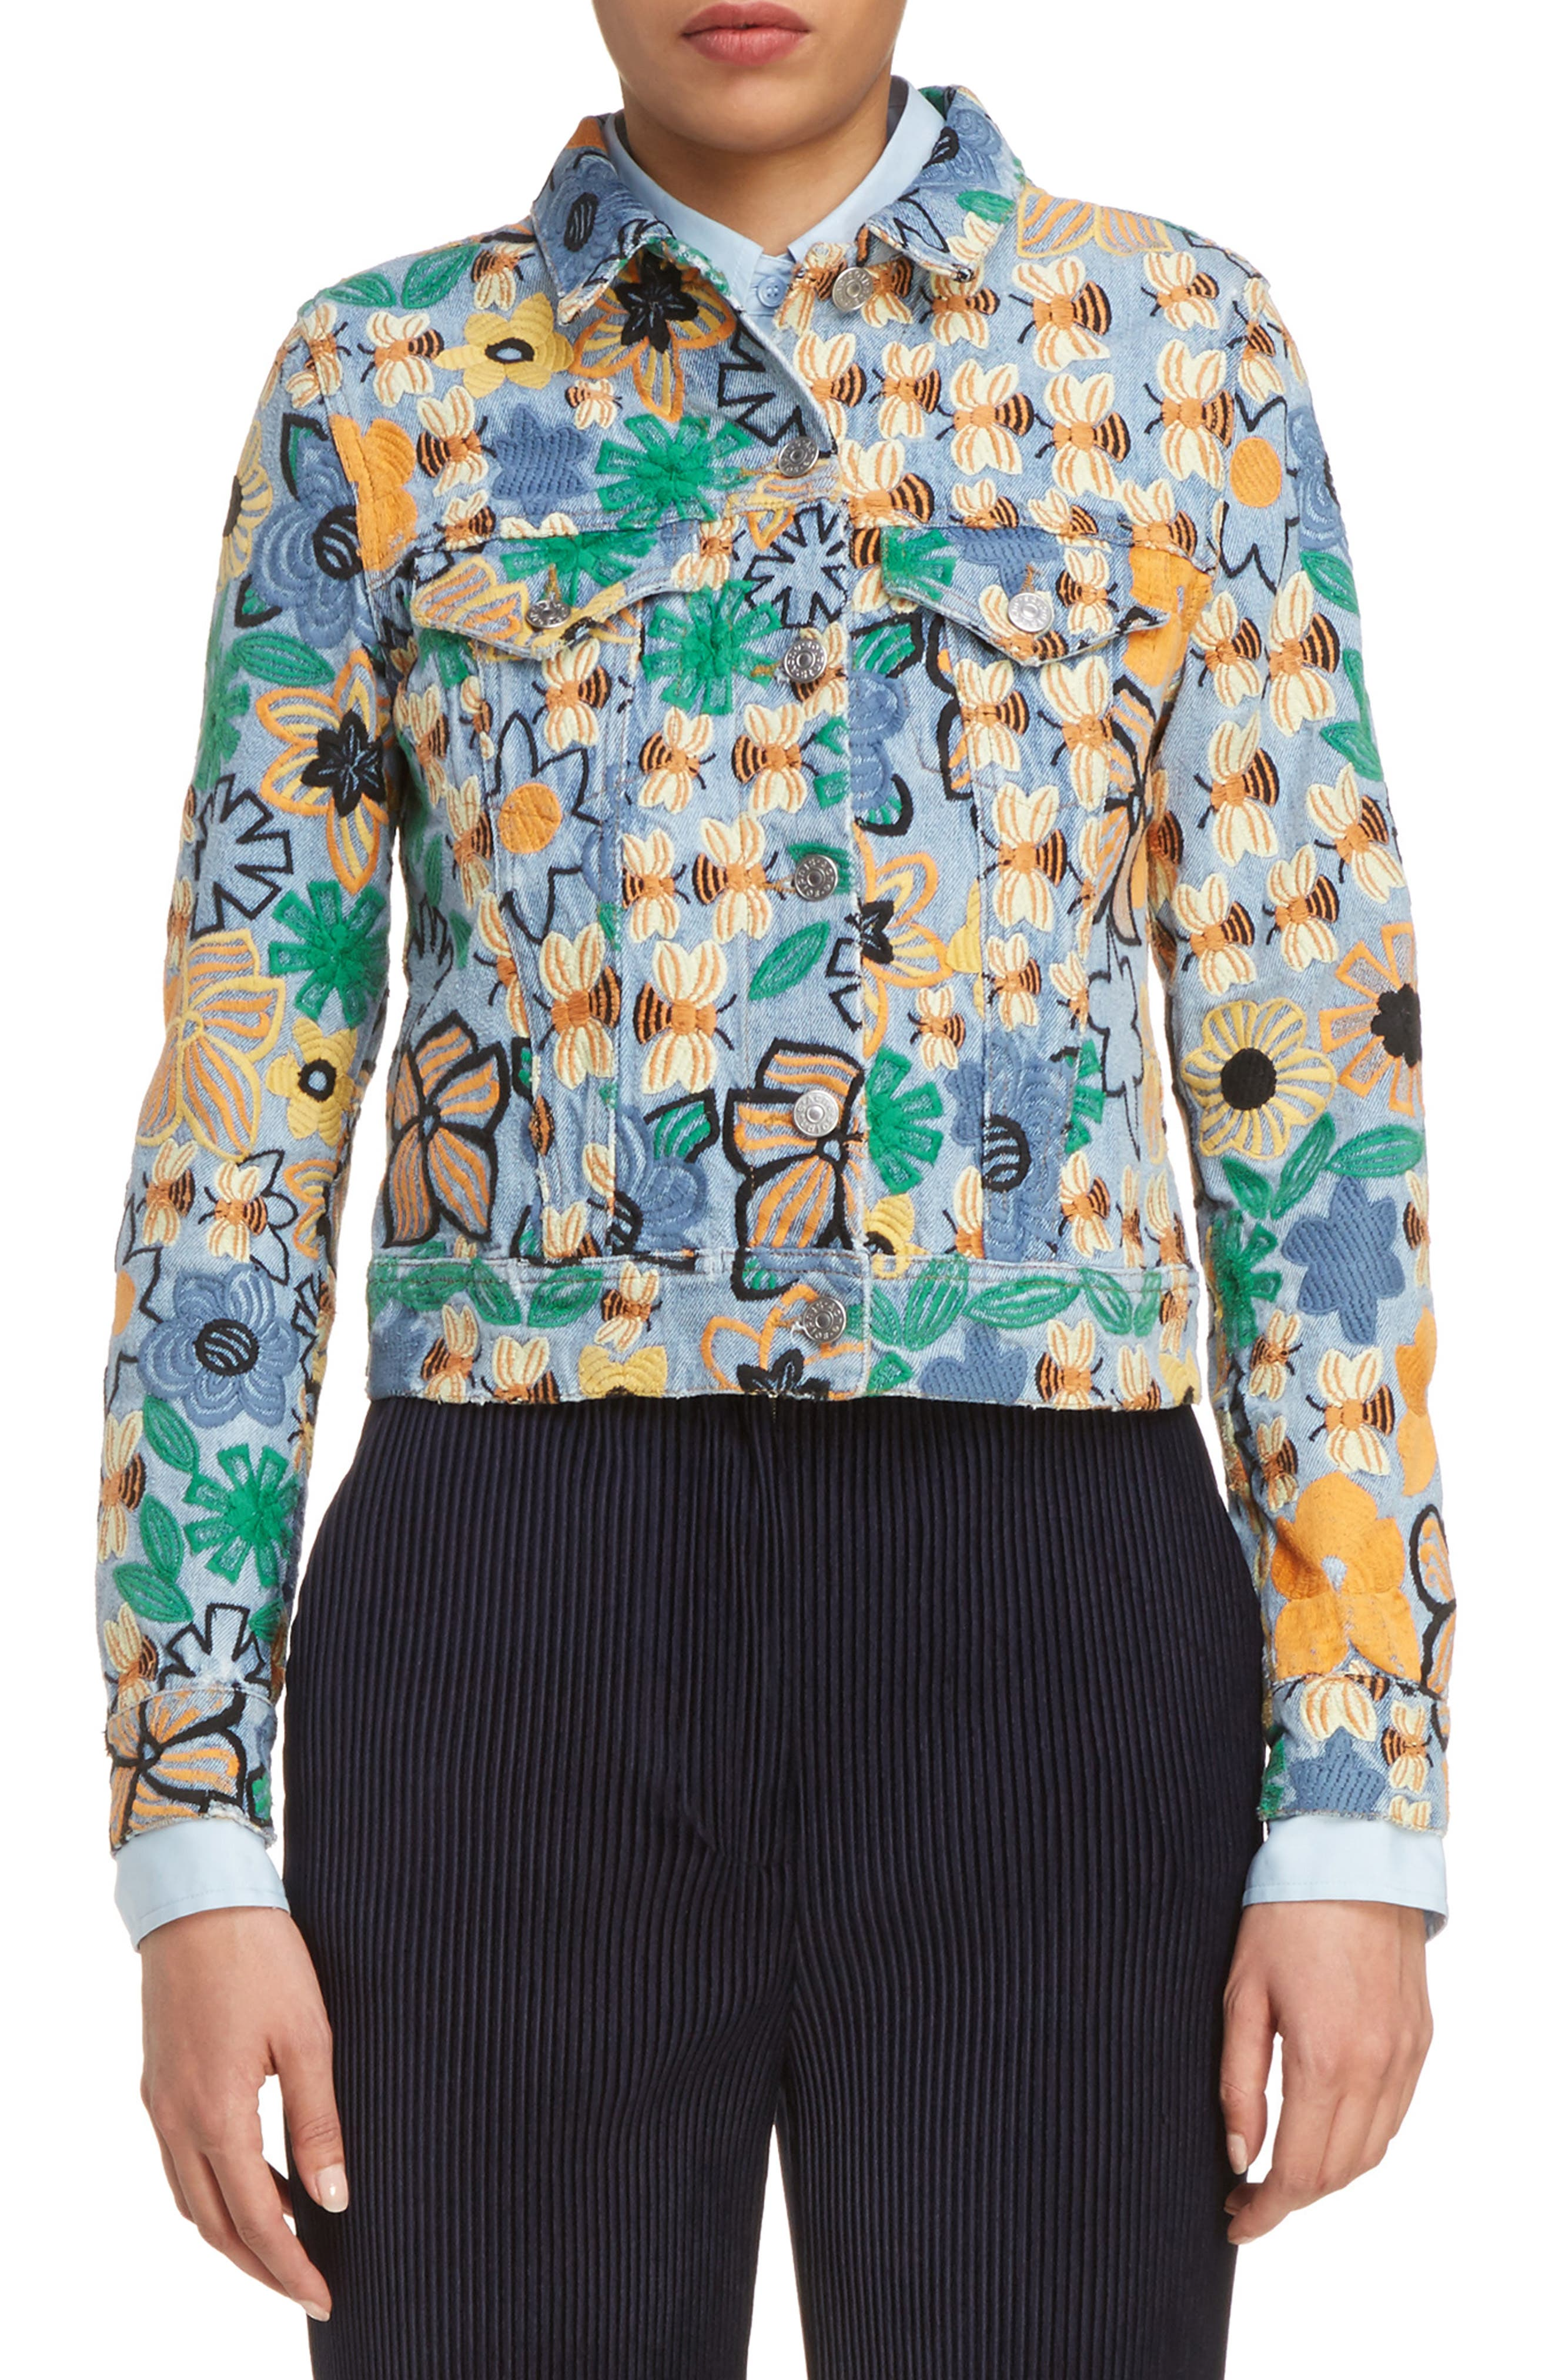 Chea Floral Embroidered Crop Denim Jacket,                         Main,                         color, Multi Floral Bright